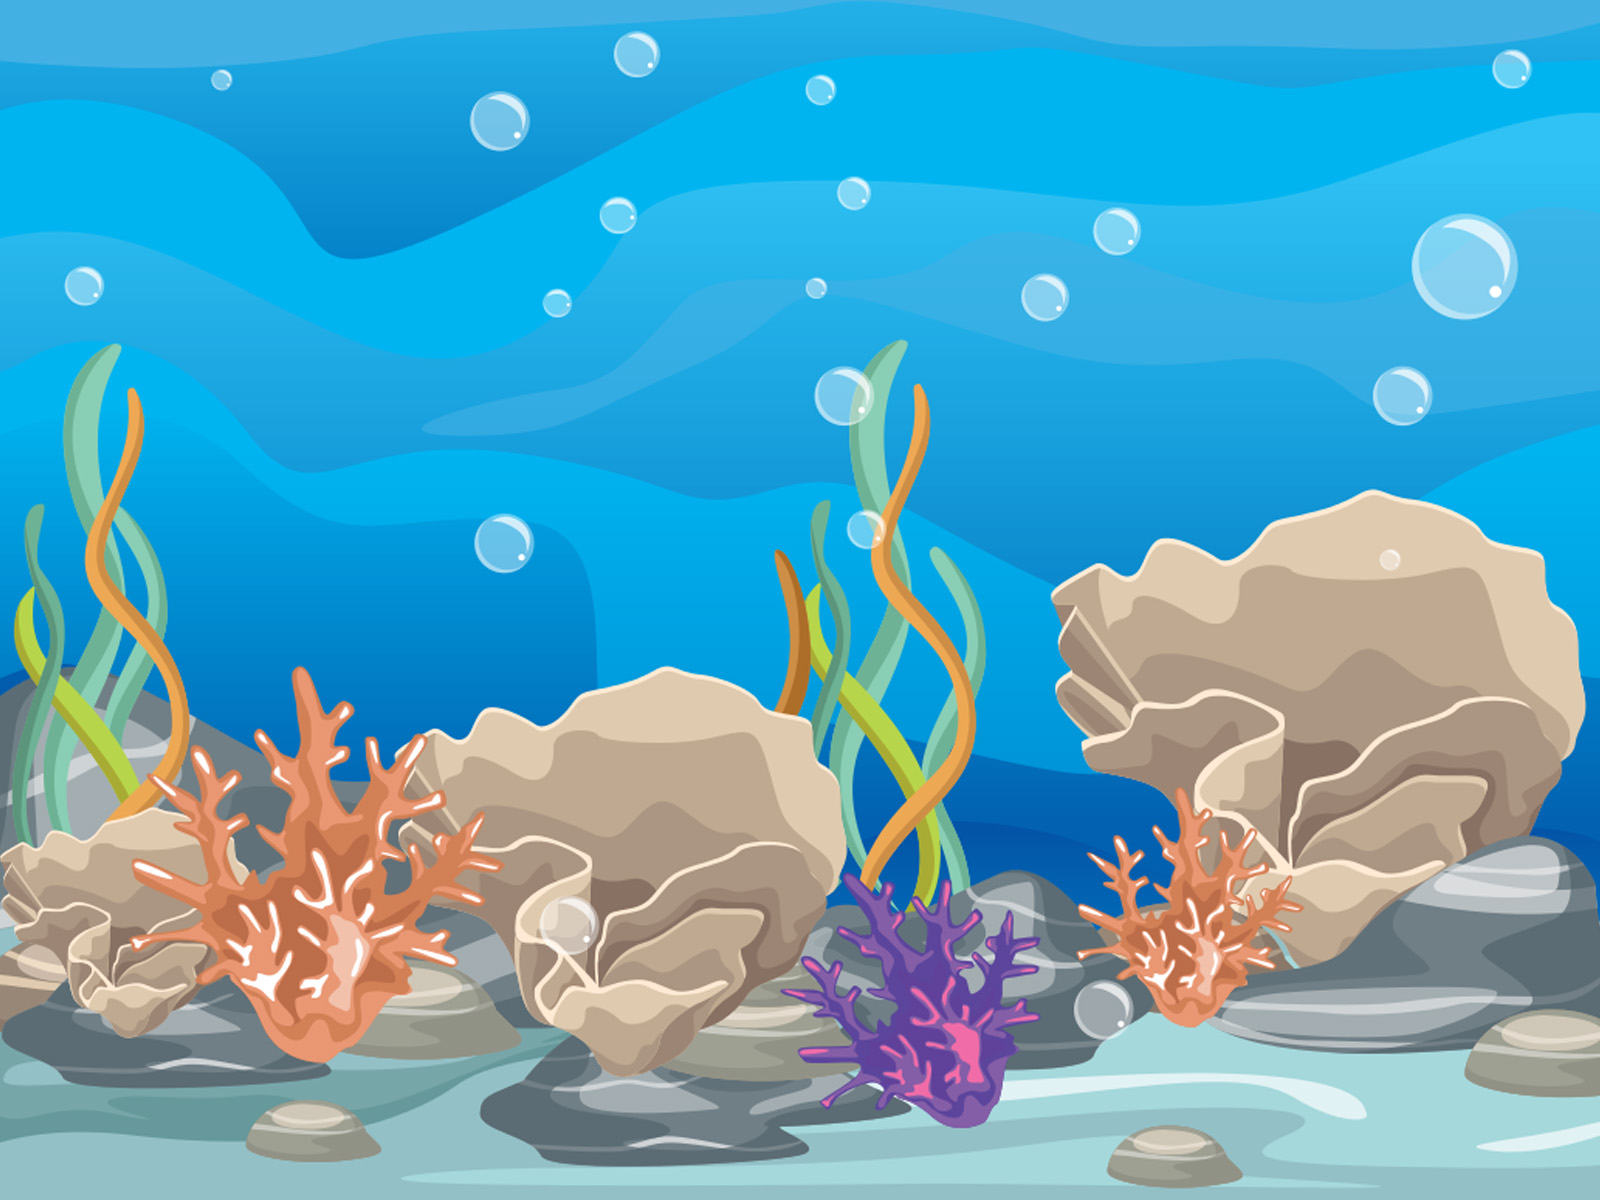 coral reef backgrounds blue  nature  purple  white clipart flowers black and white clipart flowers black and white free